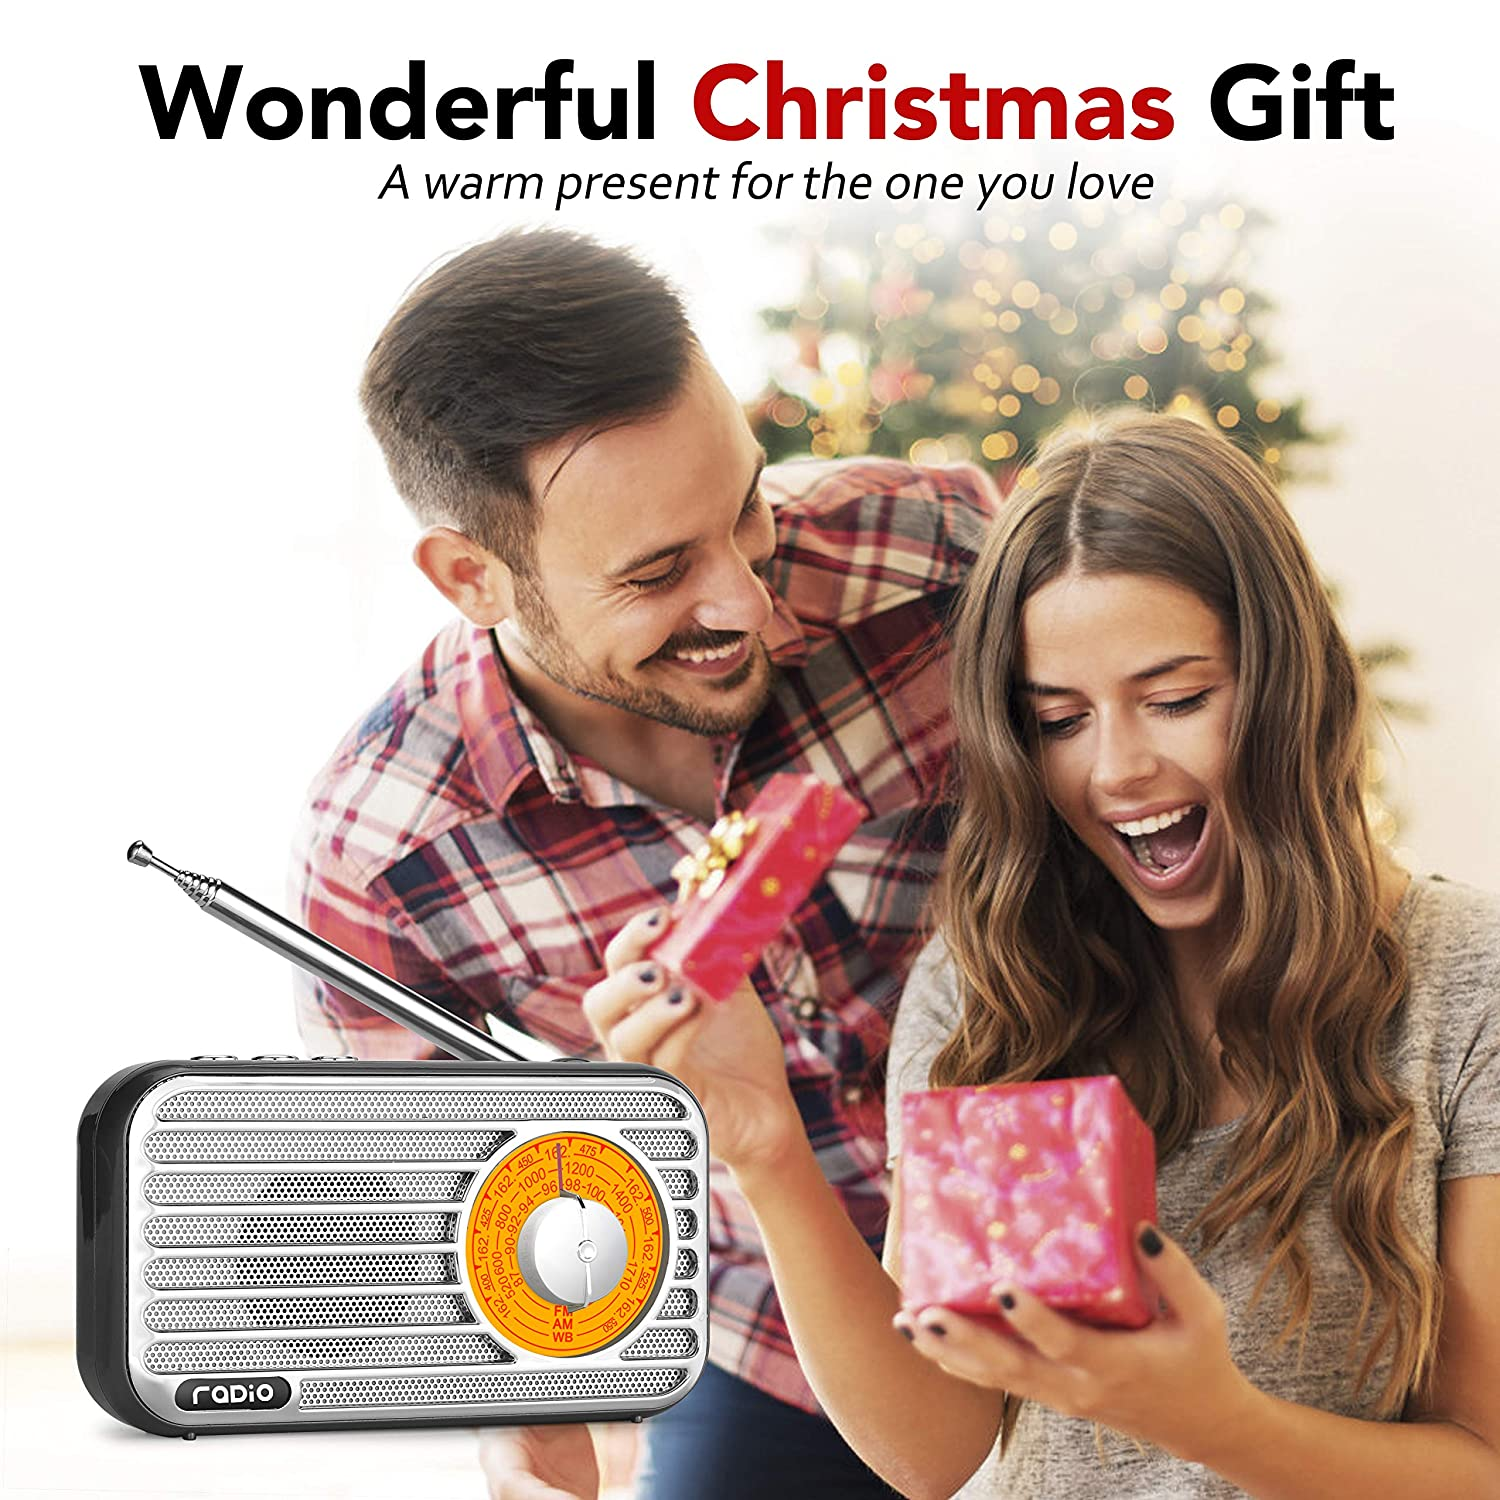 Black Headphone Jack Retro Bluetooth Speaker Kitchen Office Portable AM FM Weather Radio USB//TF//AUX Player Rechargeable Battery Vintage Radio with Best Reception Loud Volume for Home